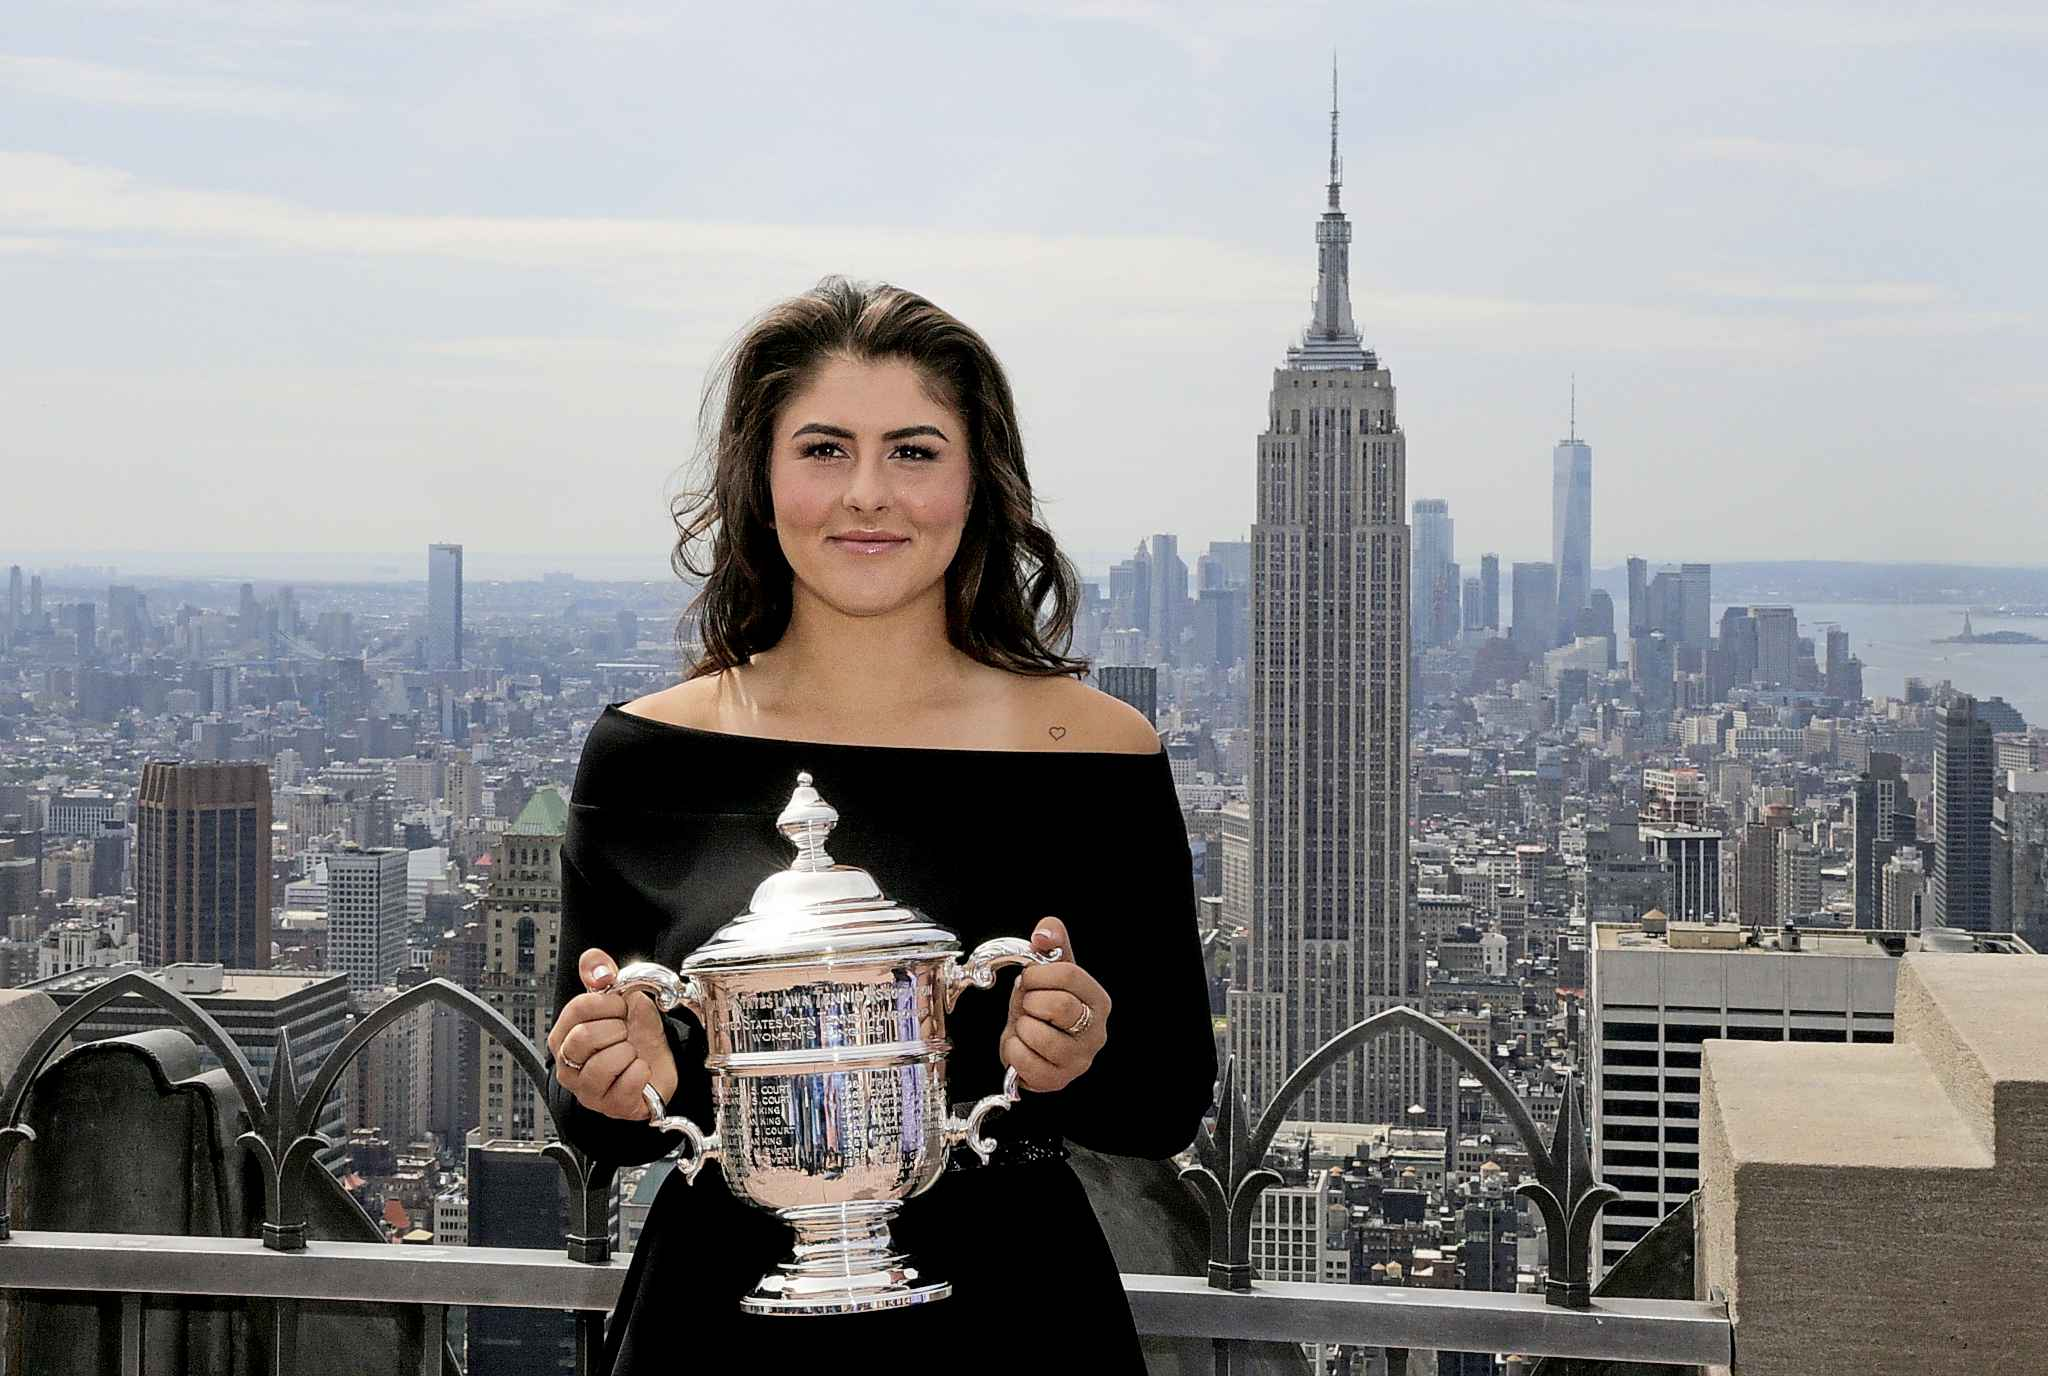 Bianca  Andreescu's triumph gives Canadians a moment to taste the sweet fruits of our country's openness to the world. (Charles Krupa / Associated Press files)